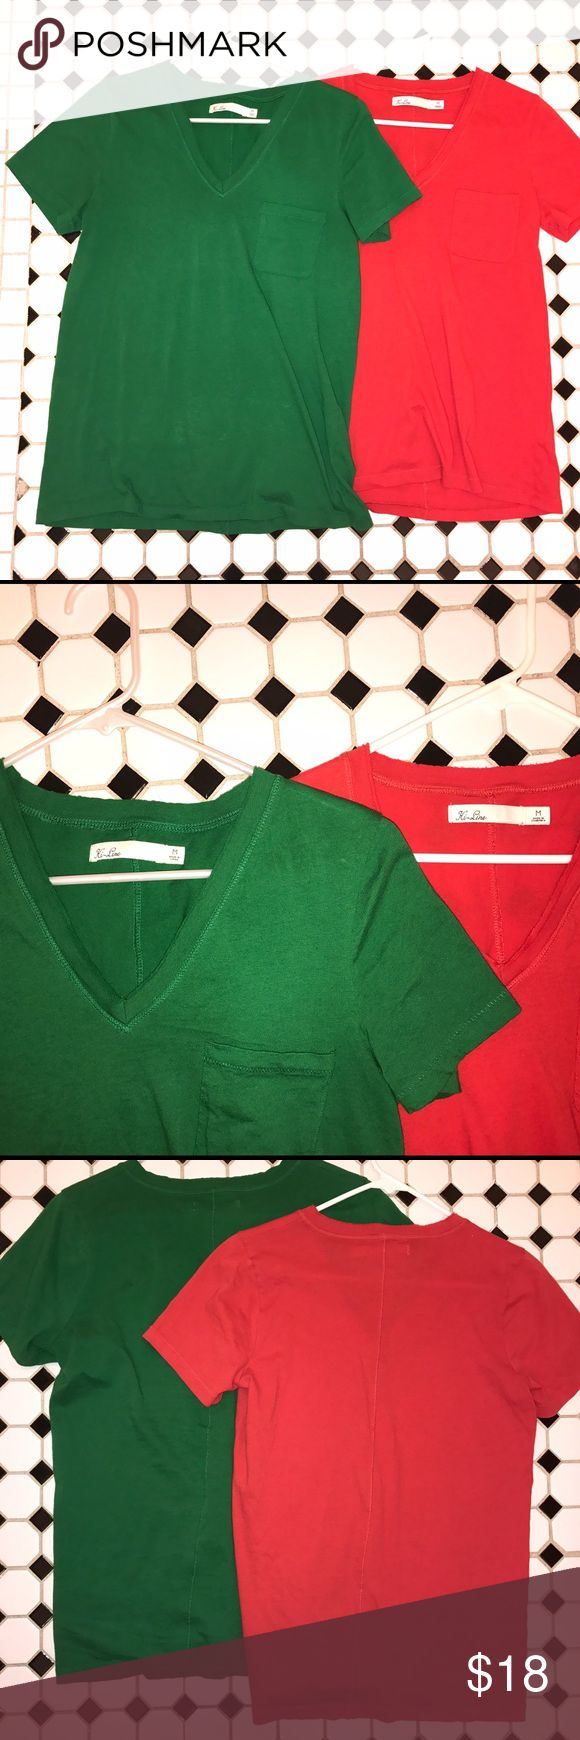 2 Madewell Hi-Line V-Neck Tees 2 Madewell T-shirts by Hi-line. One bright red on Kelly green. Size medium. Worn once or twice. They have raw edging at the v-neck and a seam down the back. Madewell Tops Tees - Short Sleeve